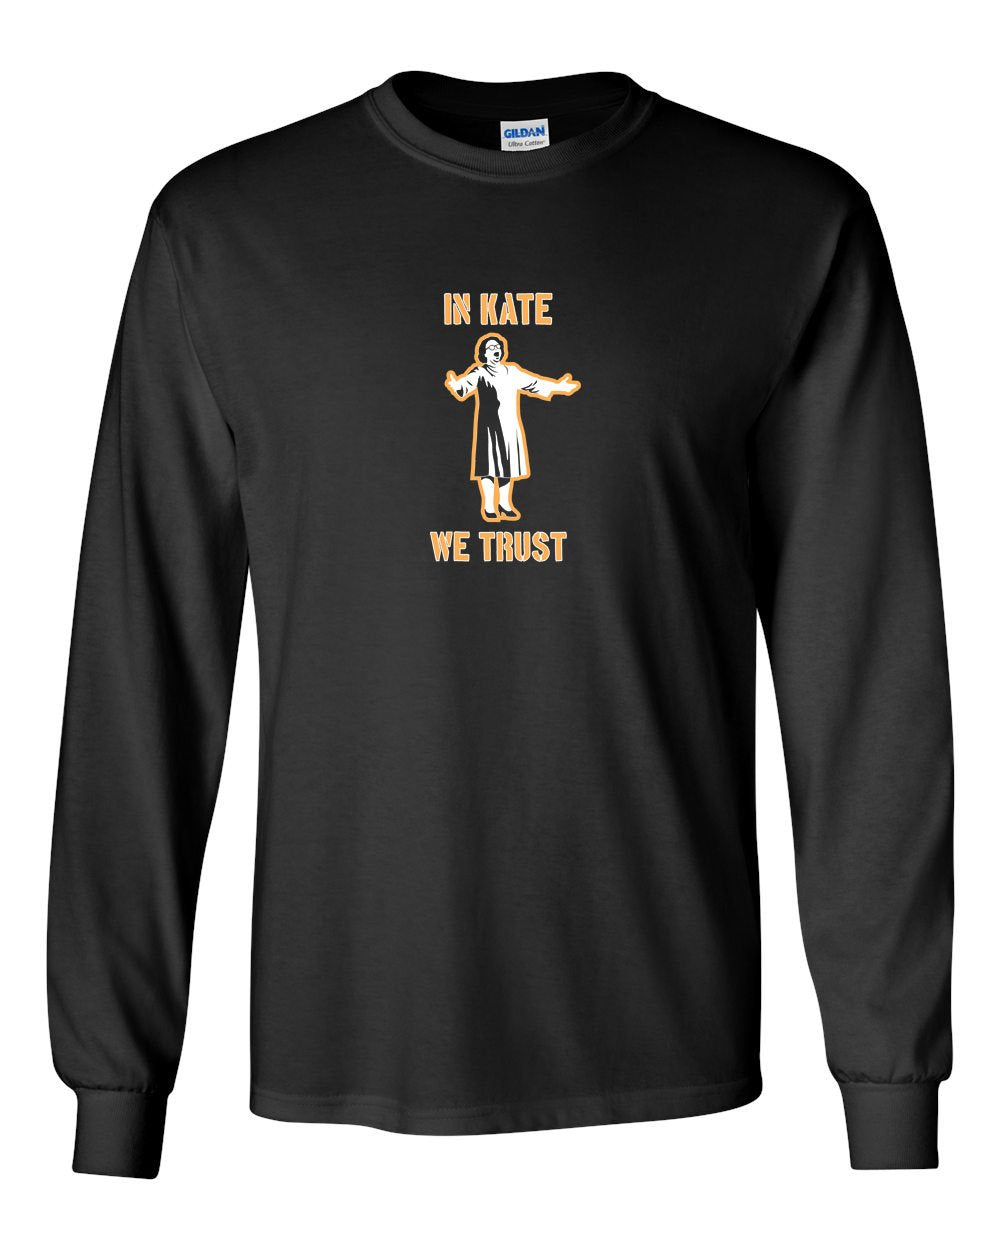 In Kate We Trust MENS Long Sleeve Heavy Cotton T-Shirt